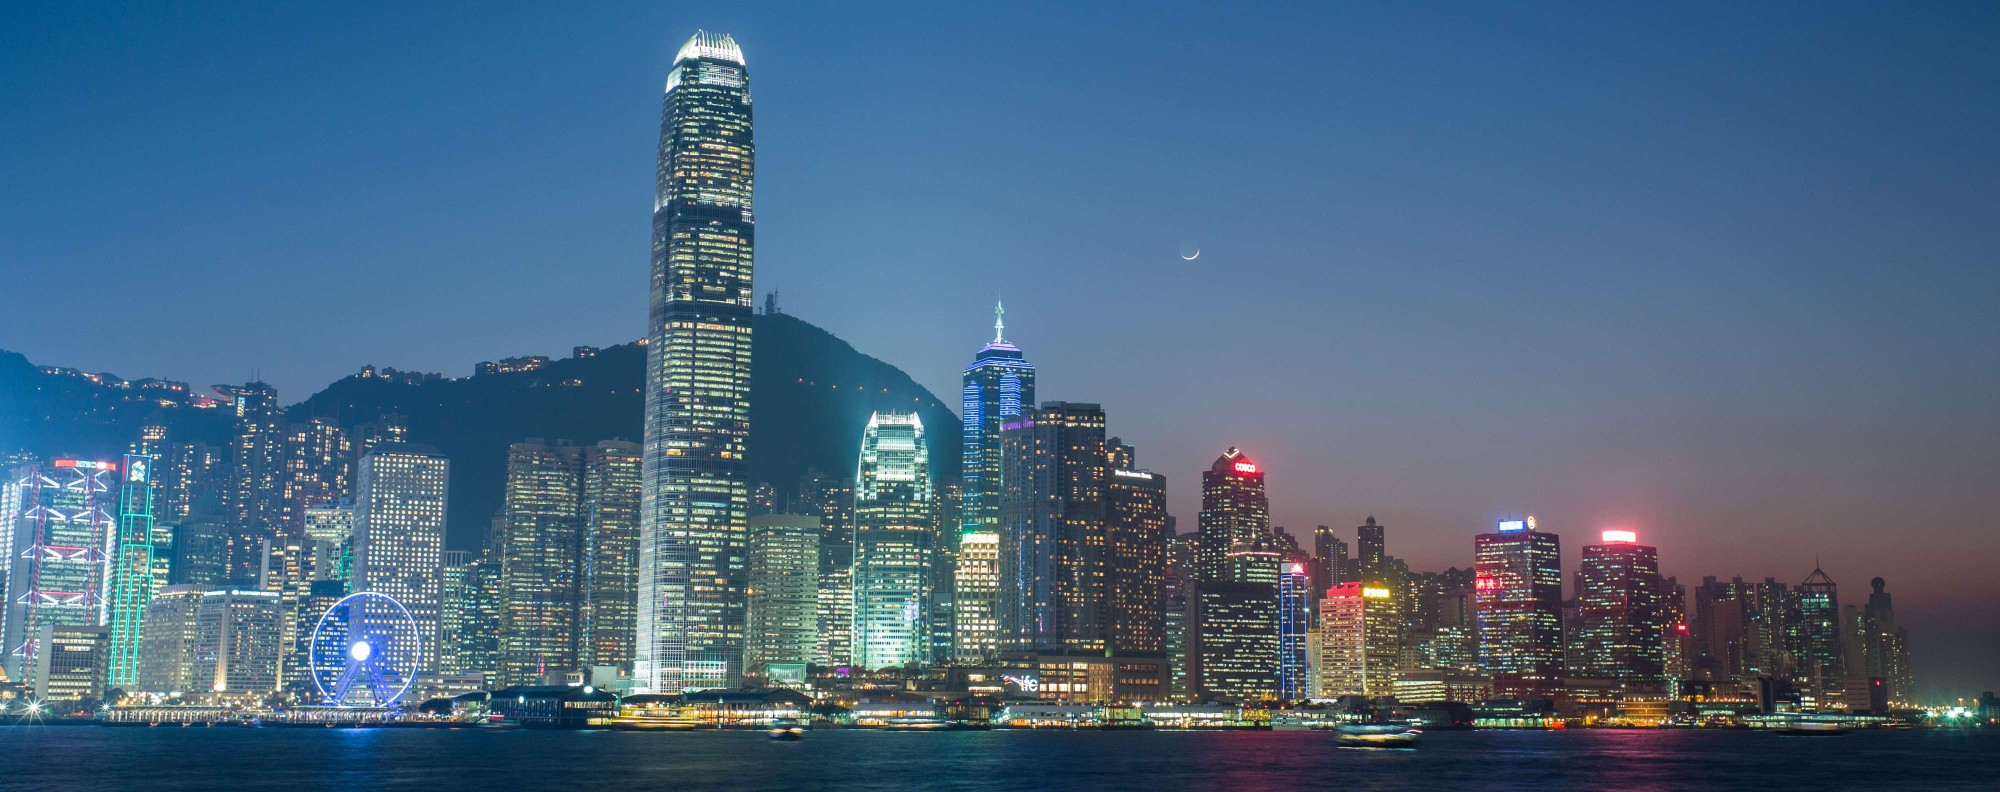 Victoria Harbour and the Hong Kong skyline. Photo: AFP